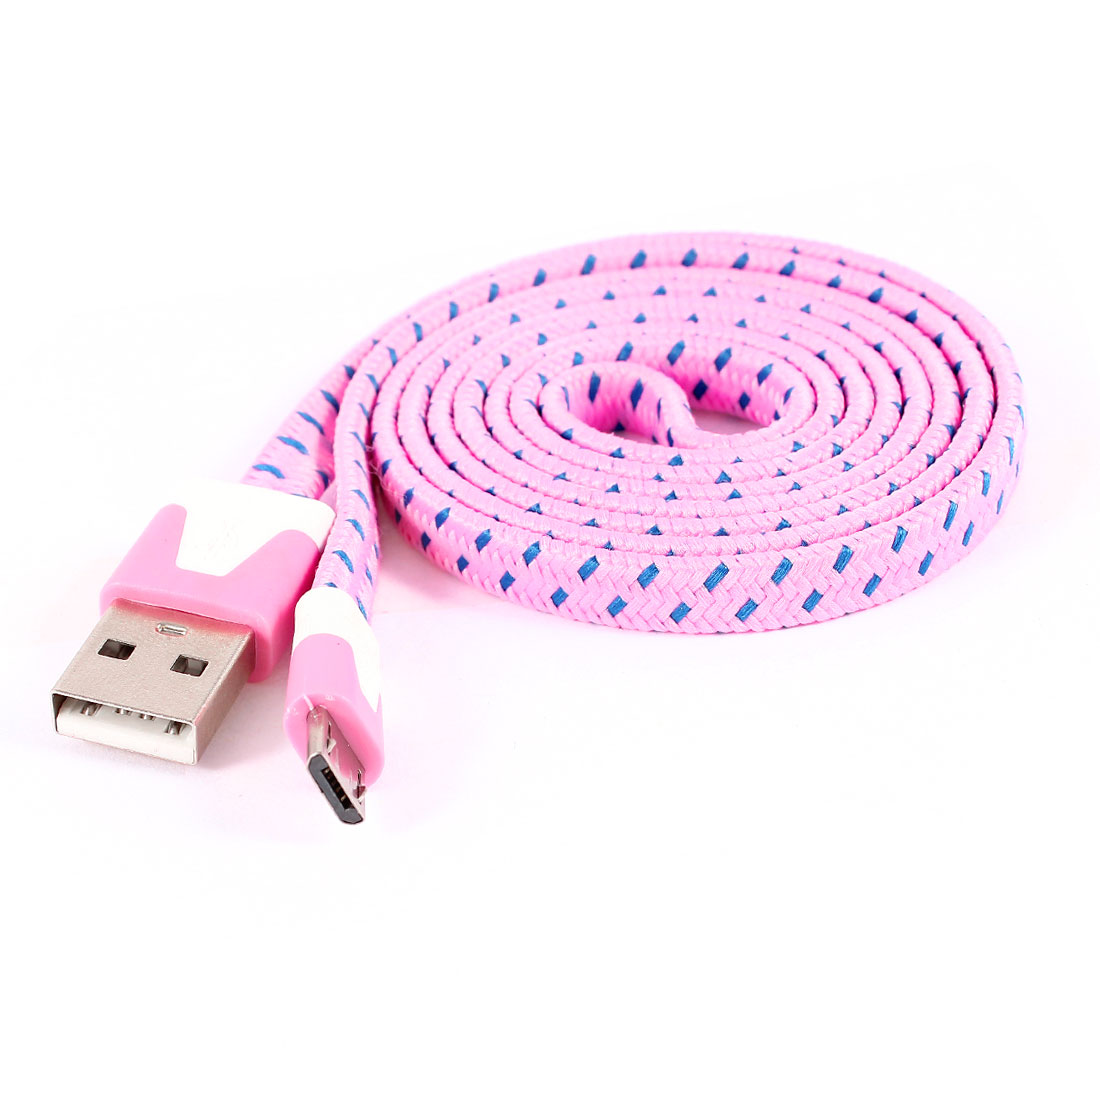 Pink USB 2.0 Type A Male to Micro USB Male Flat Data Sync Charging Cable 1M